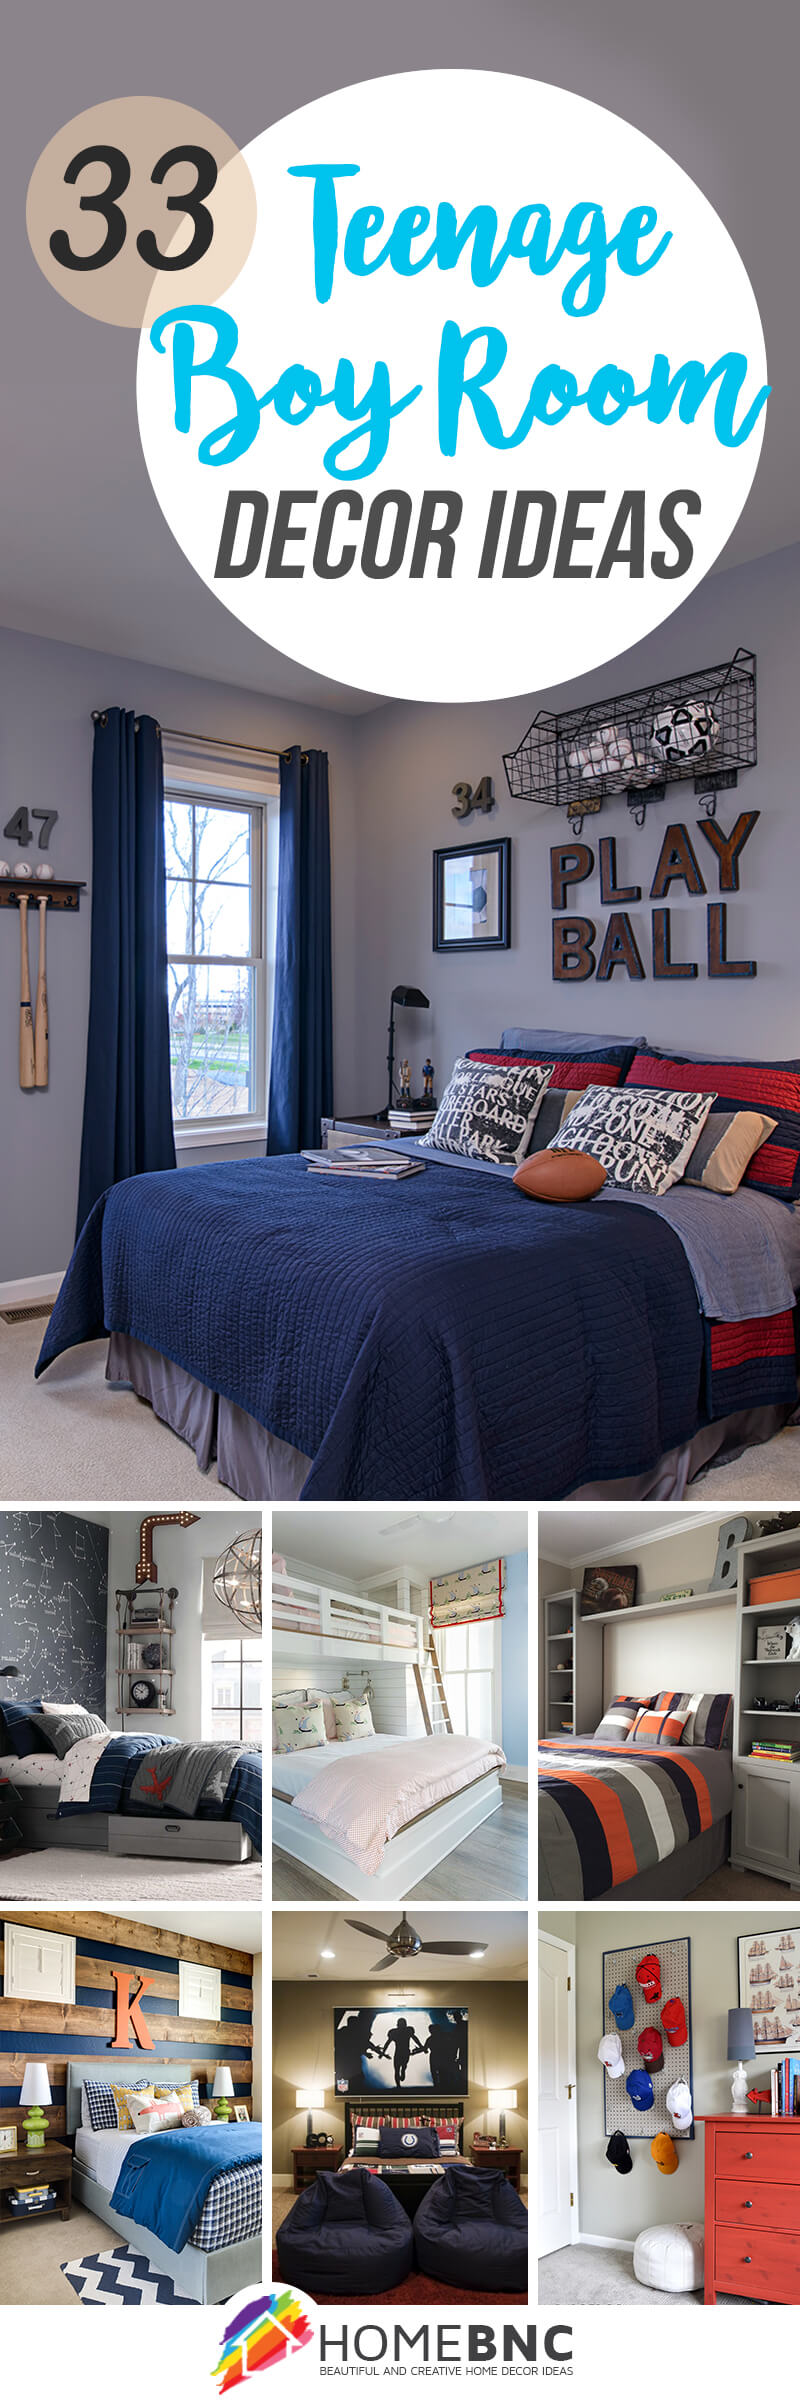 Superieur 33 On Trend Teenage Boy Room Decor Ideas From Sophisticated To Sporty